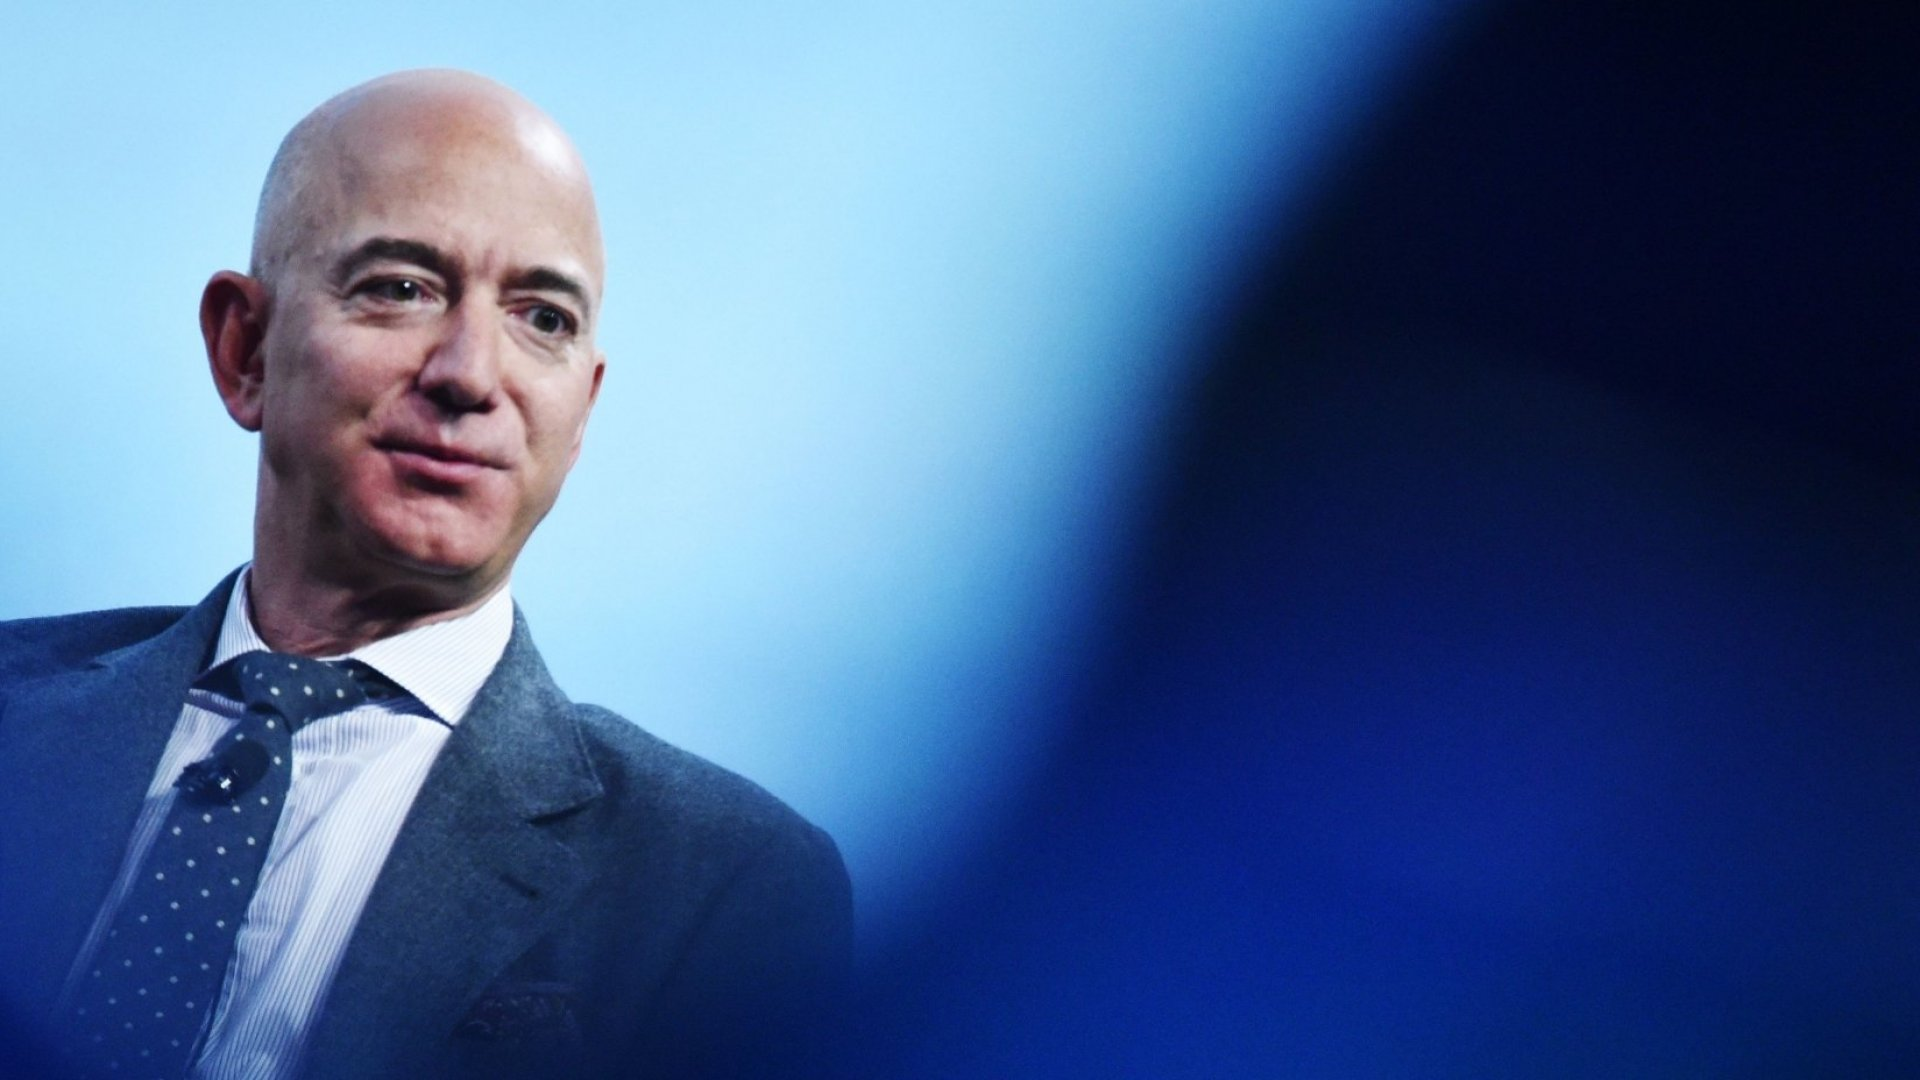 Jeff Bezos adds $13 billion in a single day to his worth